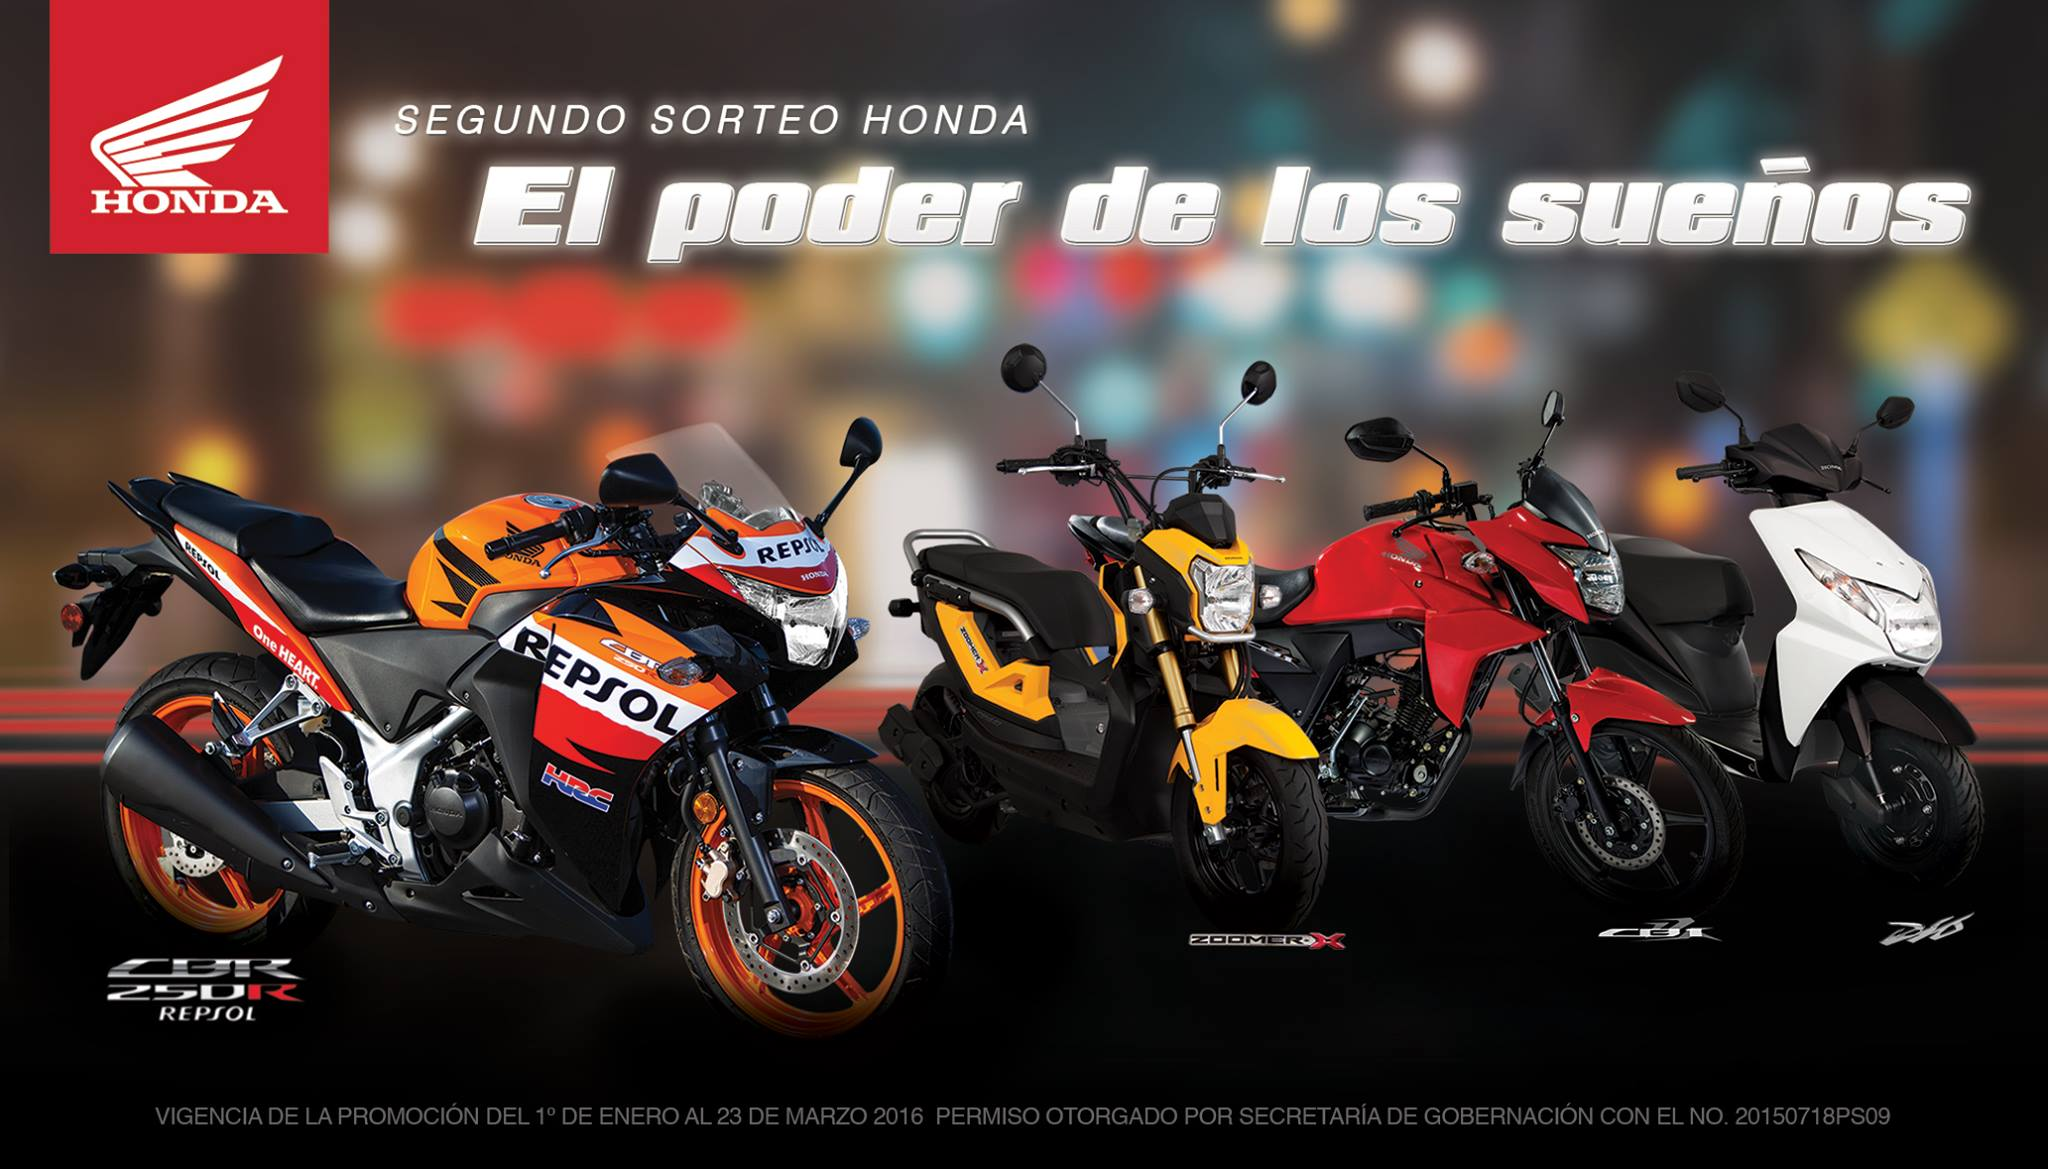 Suzuki Motos Mexico Distribuidores